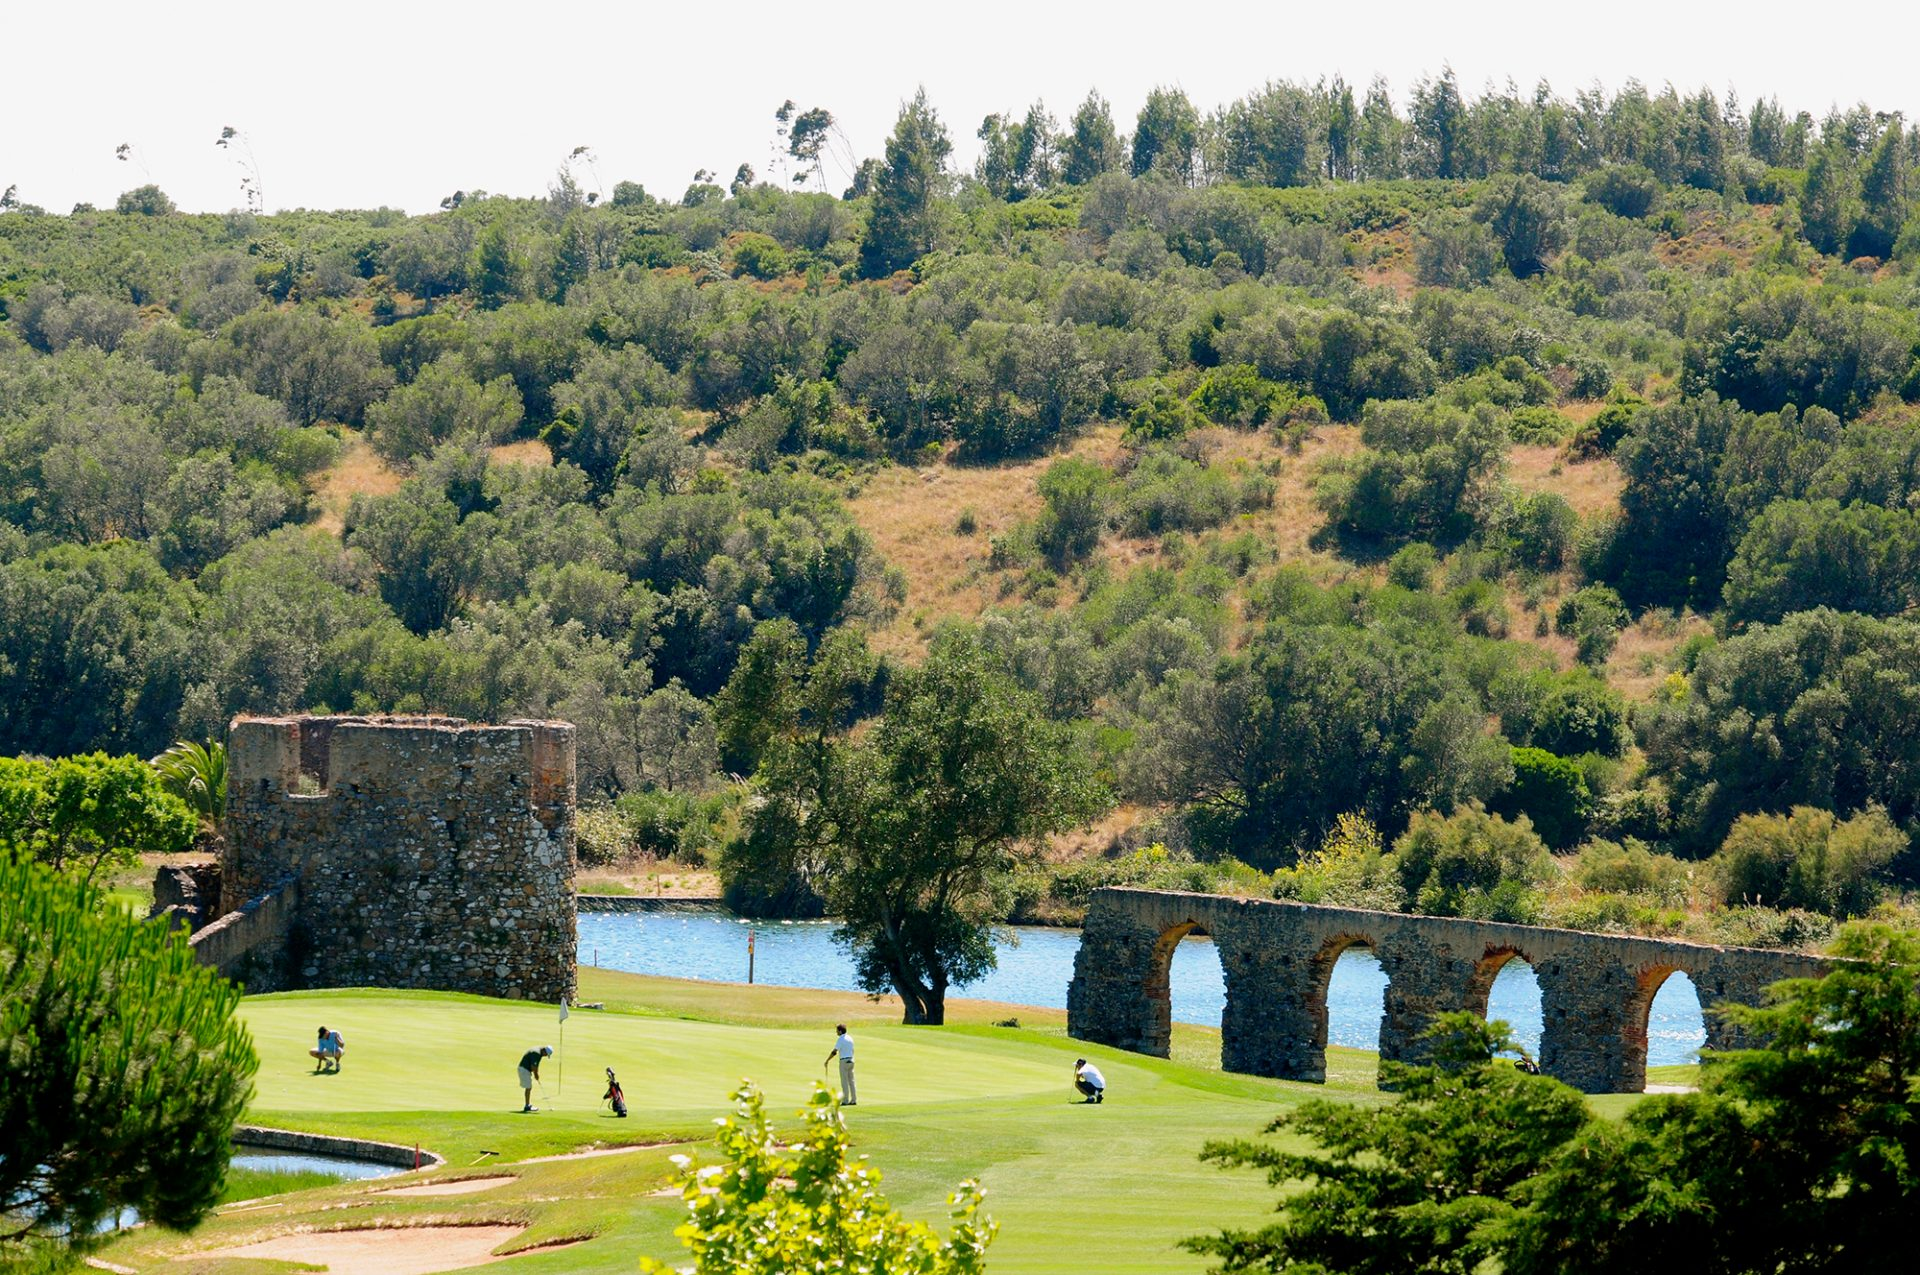 Golfreisen Costa Estoril - Penha Longa Hotel Spa & Golf Resort